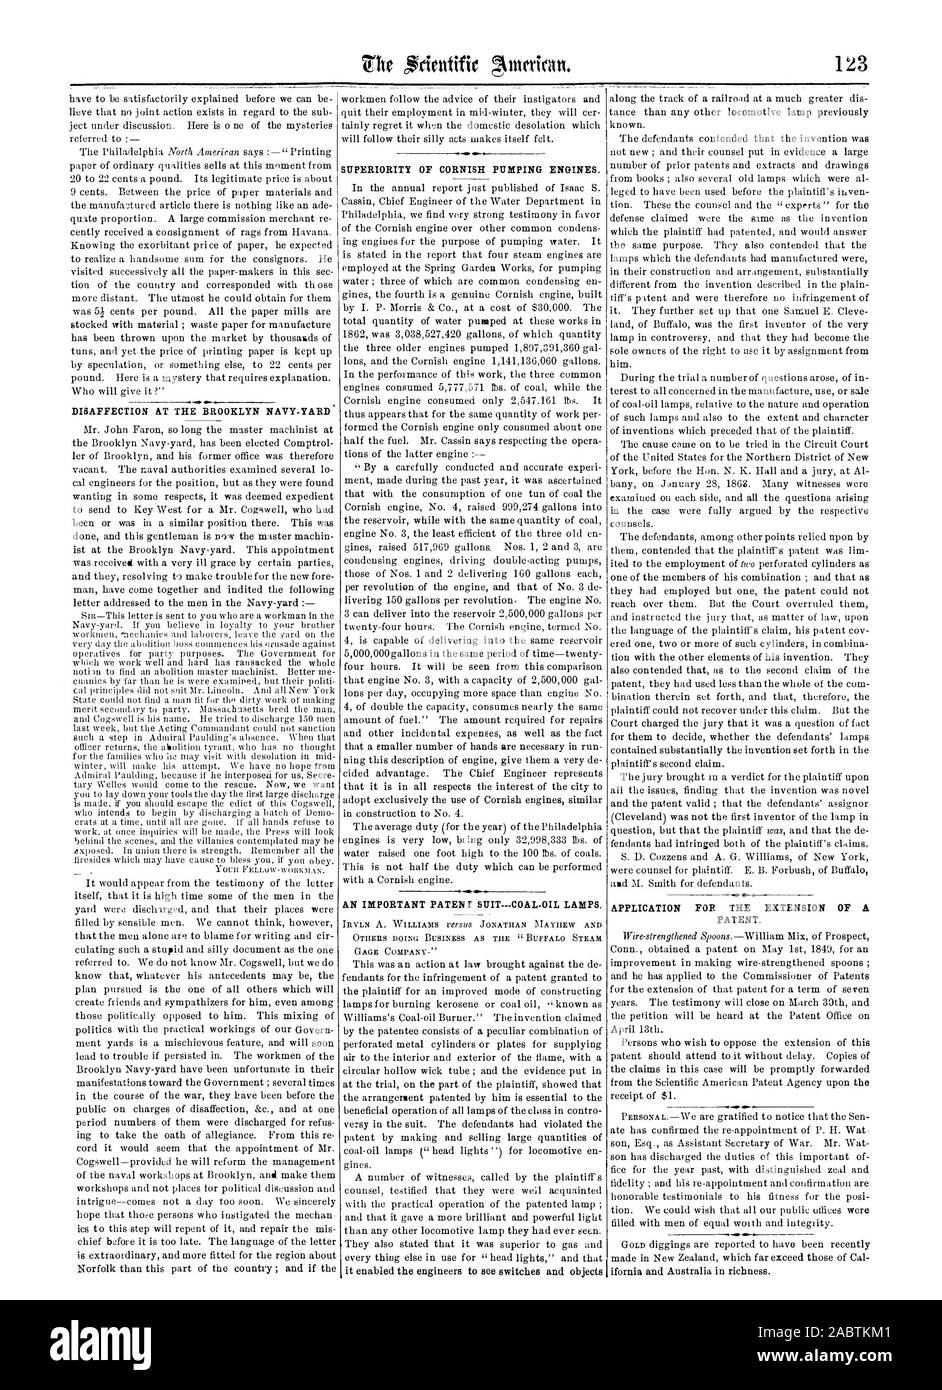 DISAFFECTION AT THE BROOKLYN NAVY-YARD SUPERIORITY OF CORNISH PUMPING ENGINES. AN IMPORTANT PATENT SUIT—COAL-OIL LAMPS. APPLICATION FOR THE EXTENSION OF A PATENT., scientific american, 1863-02-21 Stock Photo